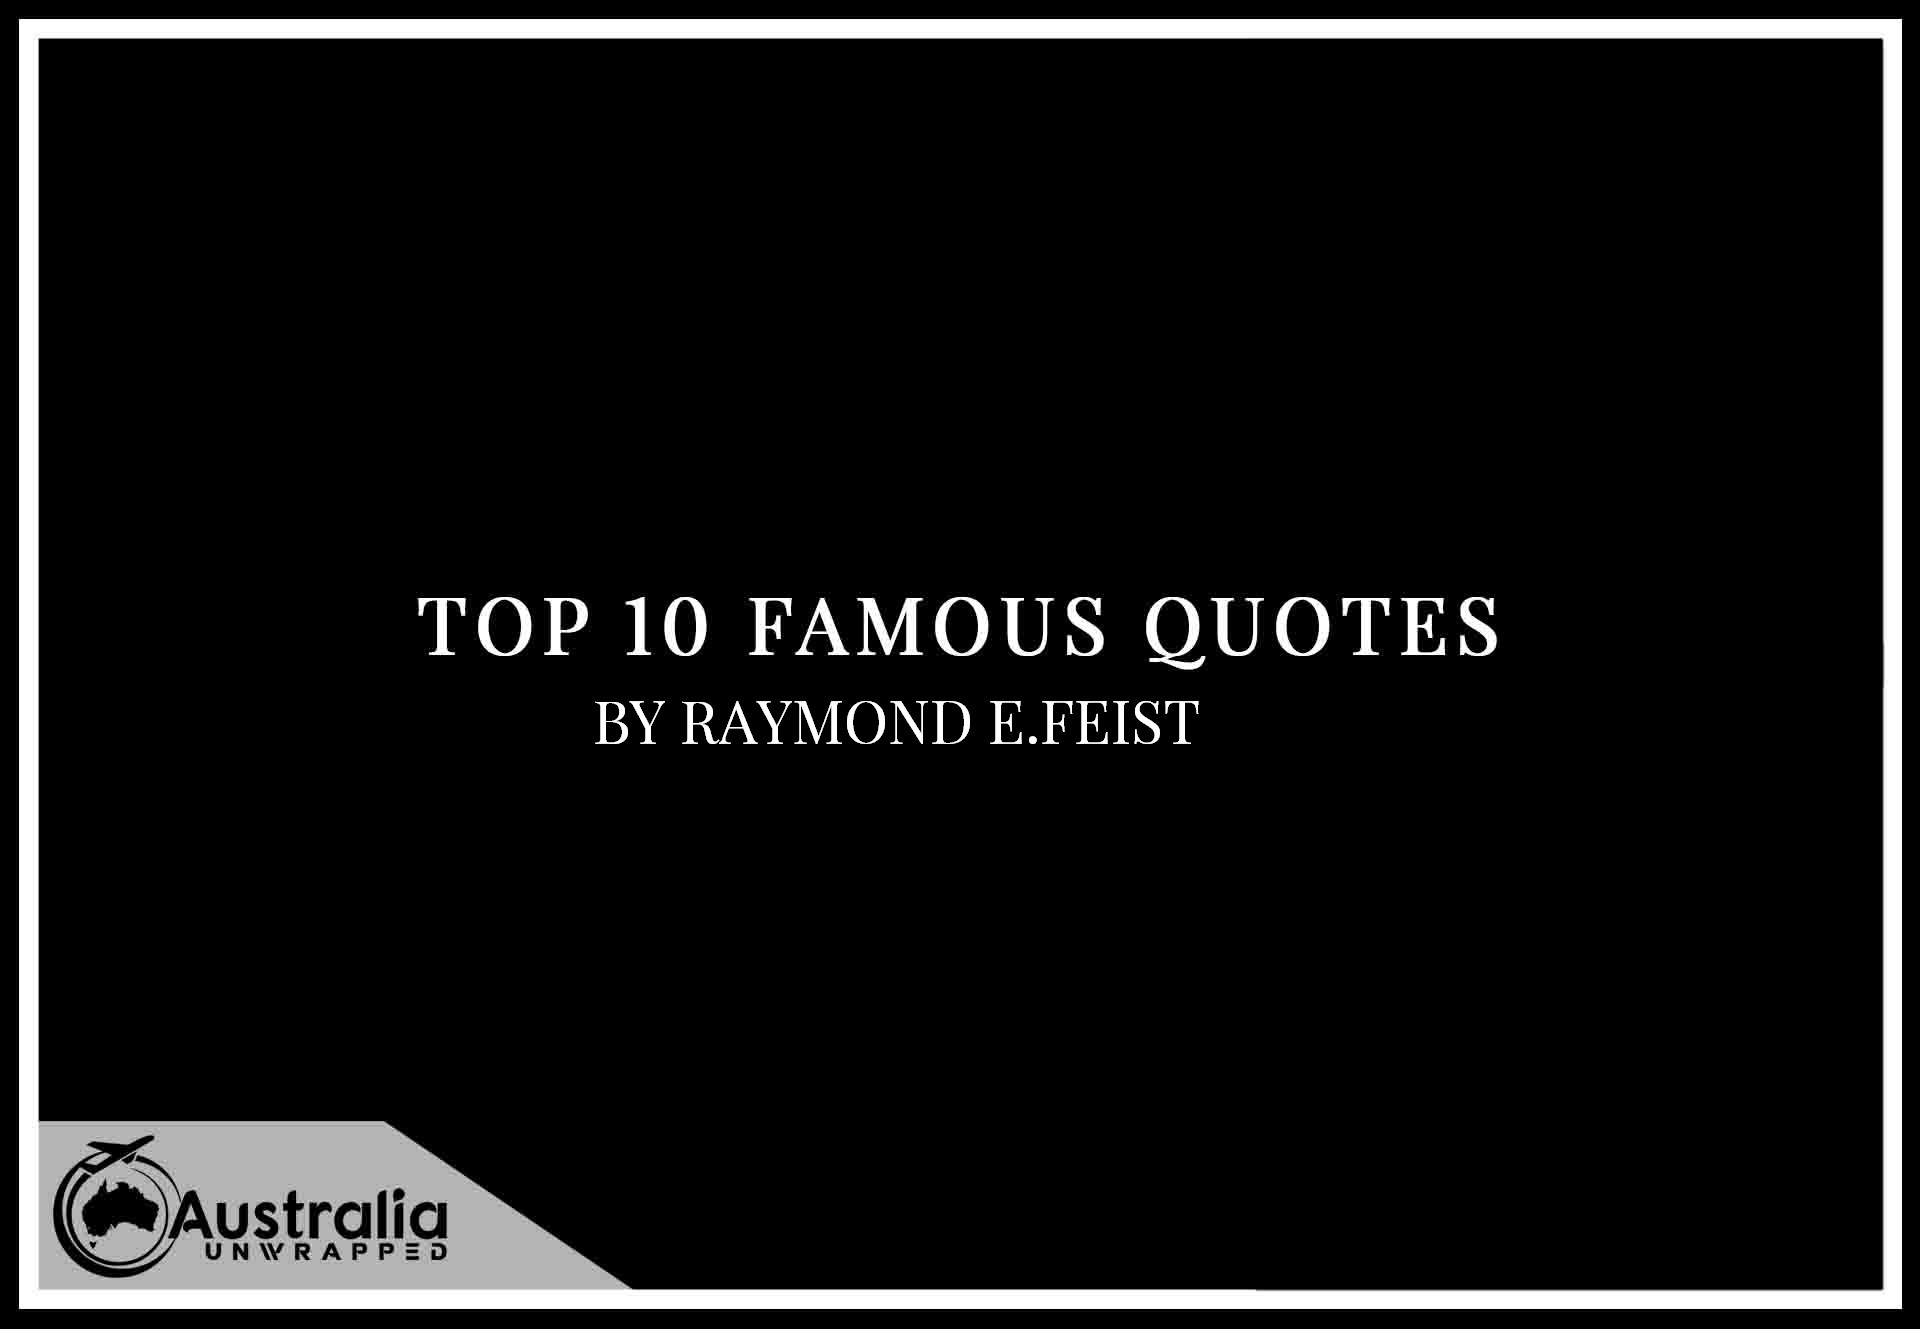 Top 10 Famous Quotes by Author Raymond E. Feist